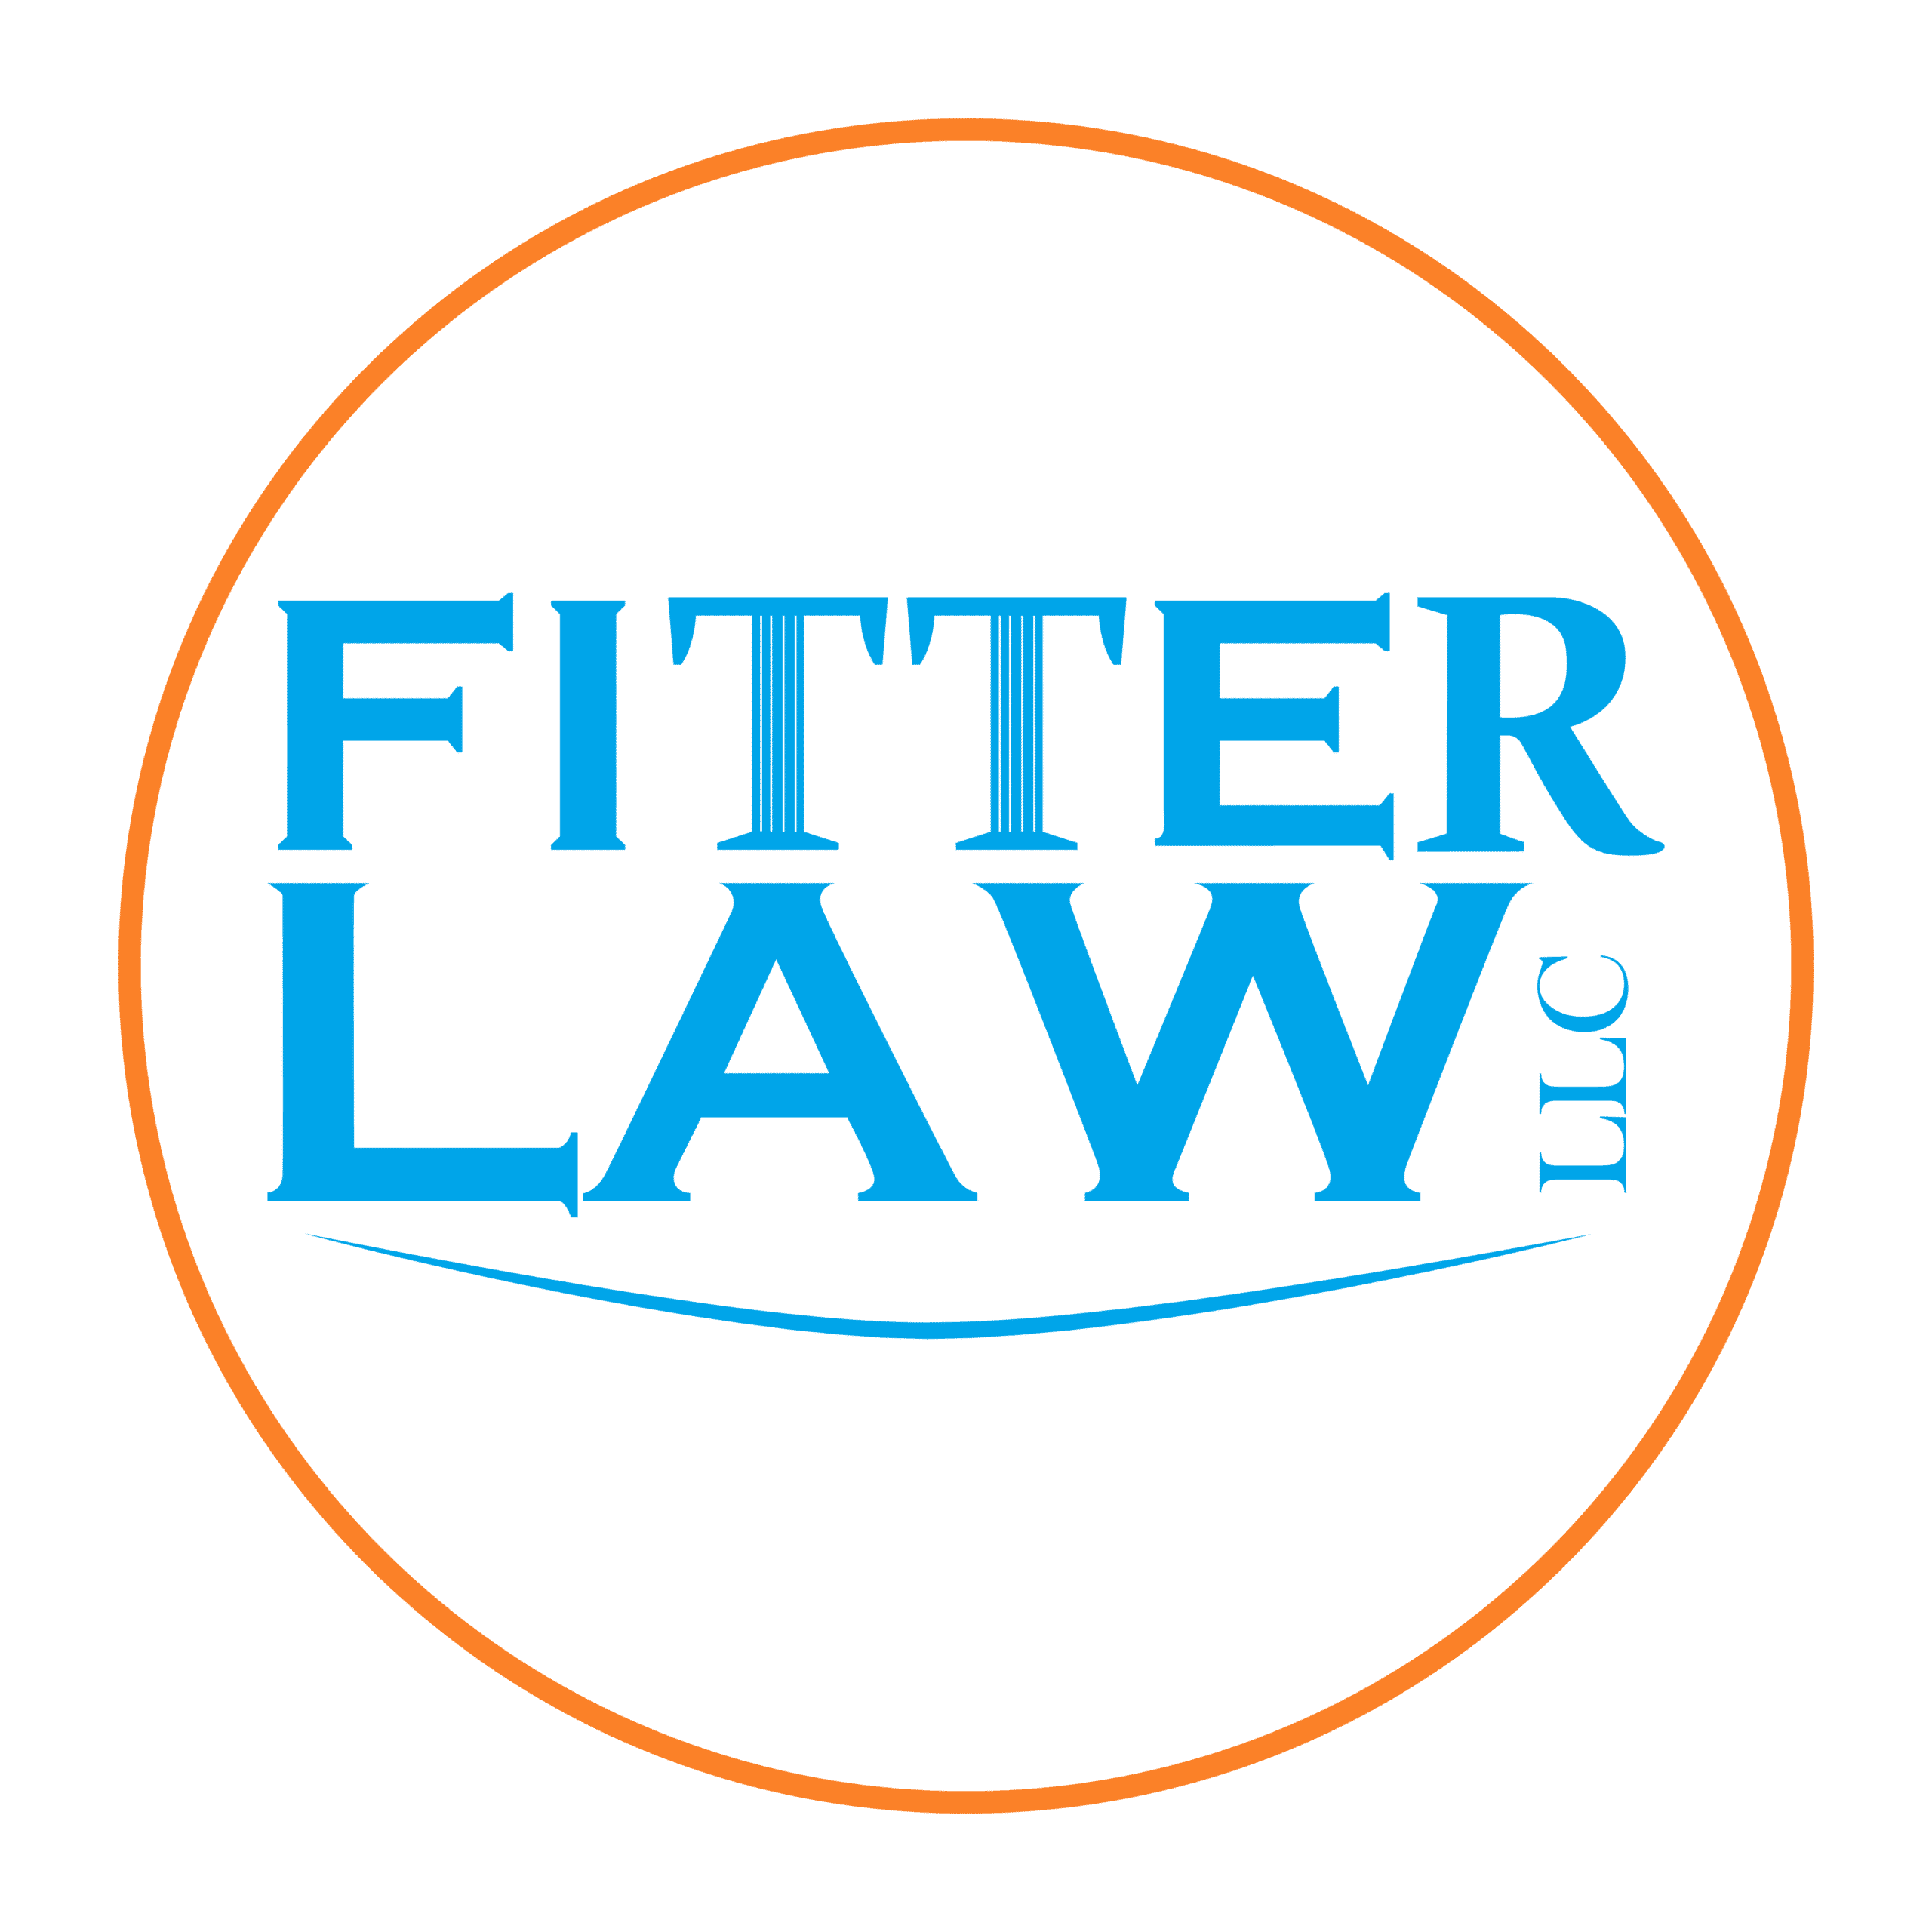 Fitter Law